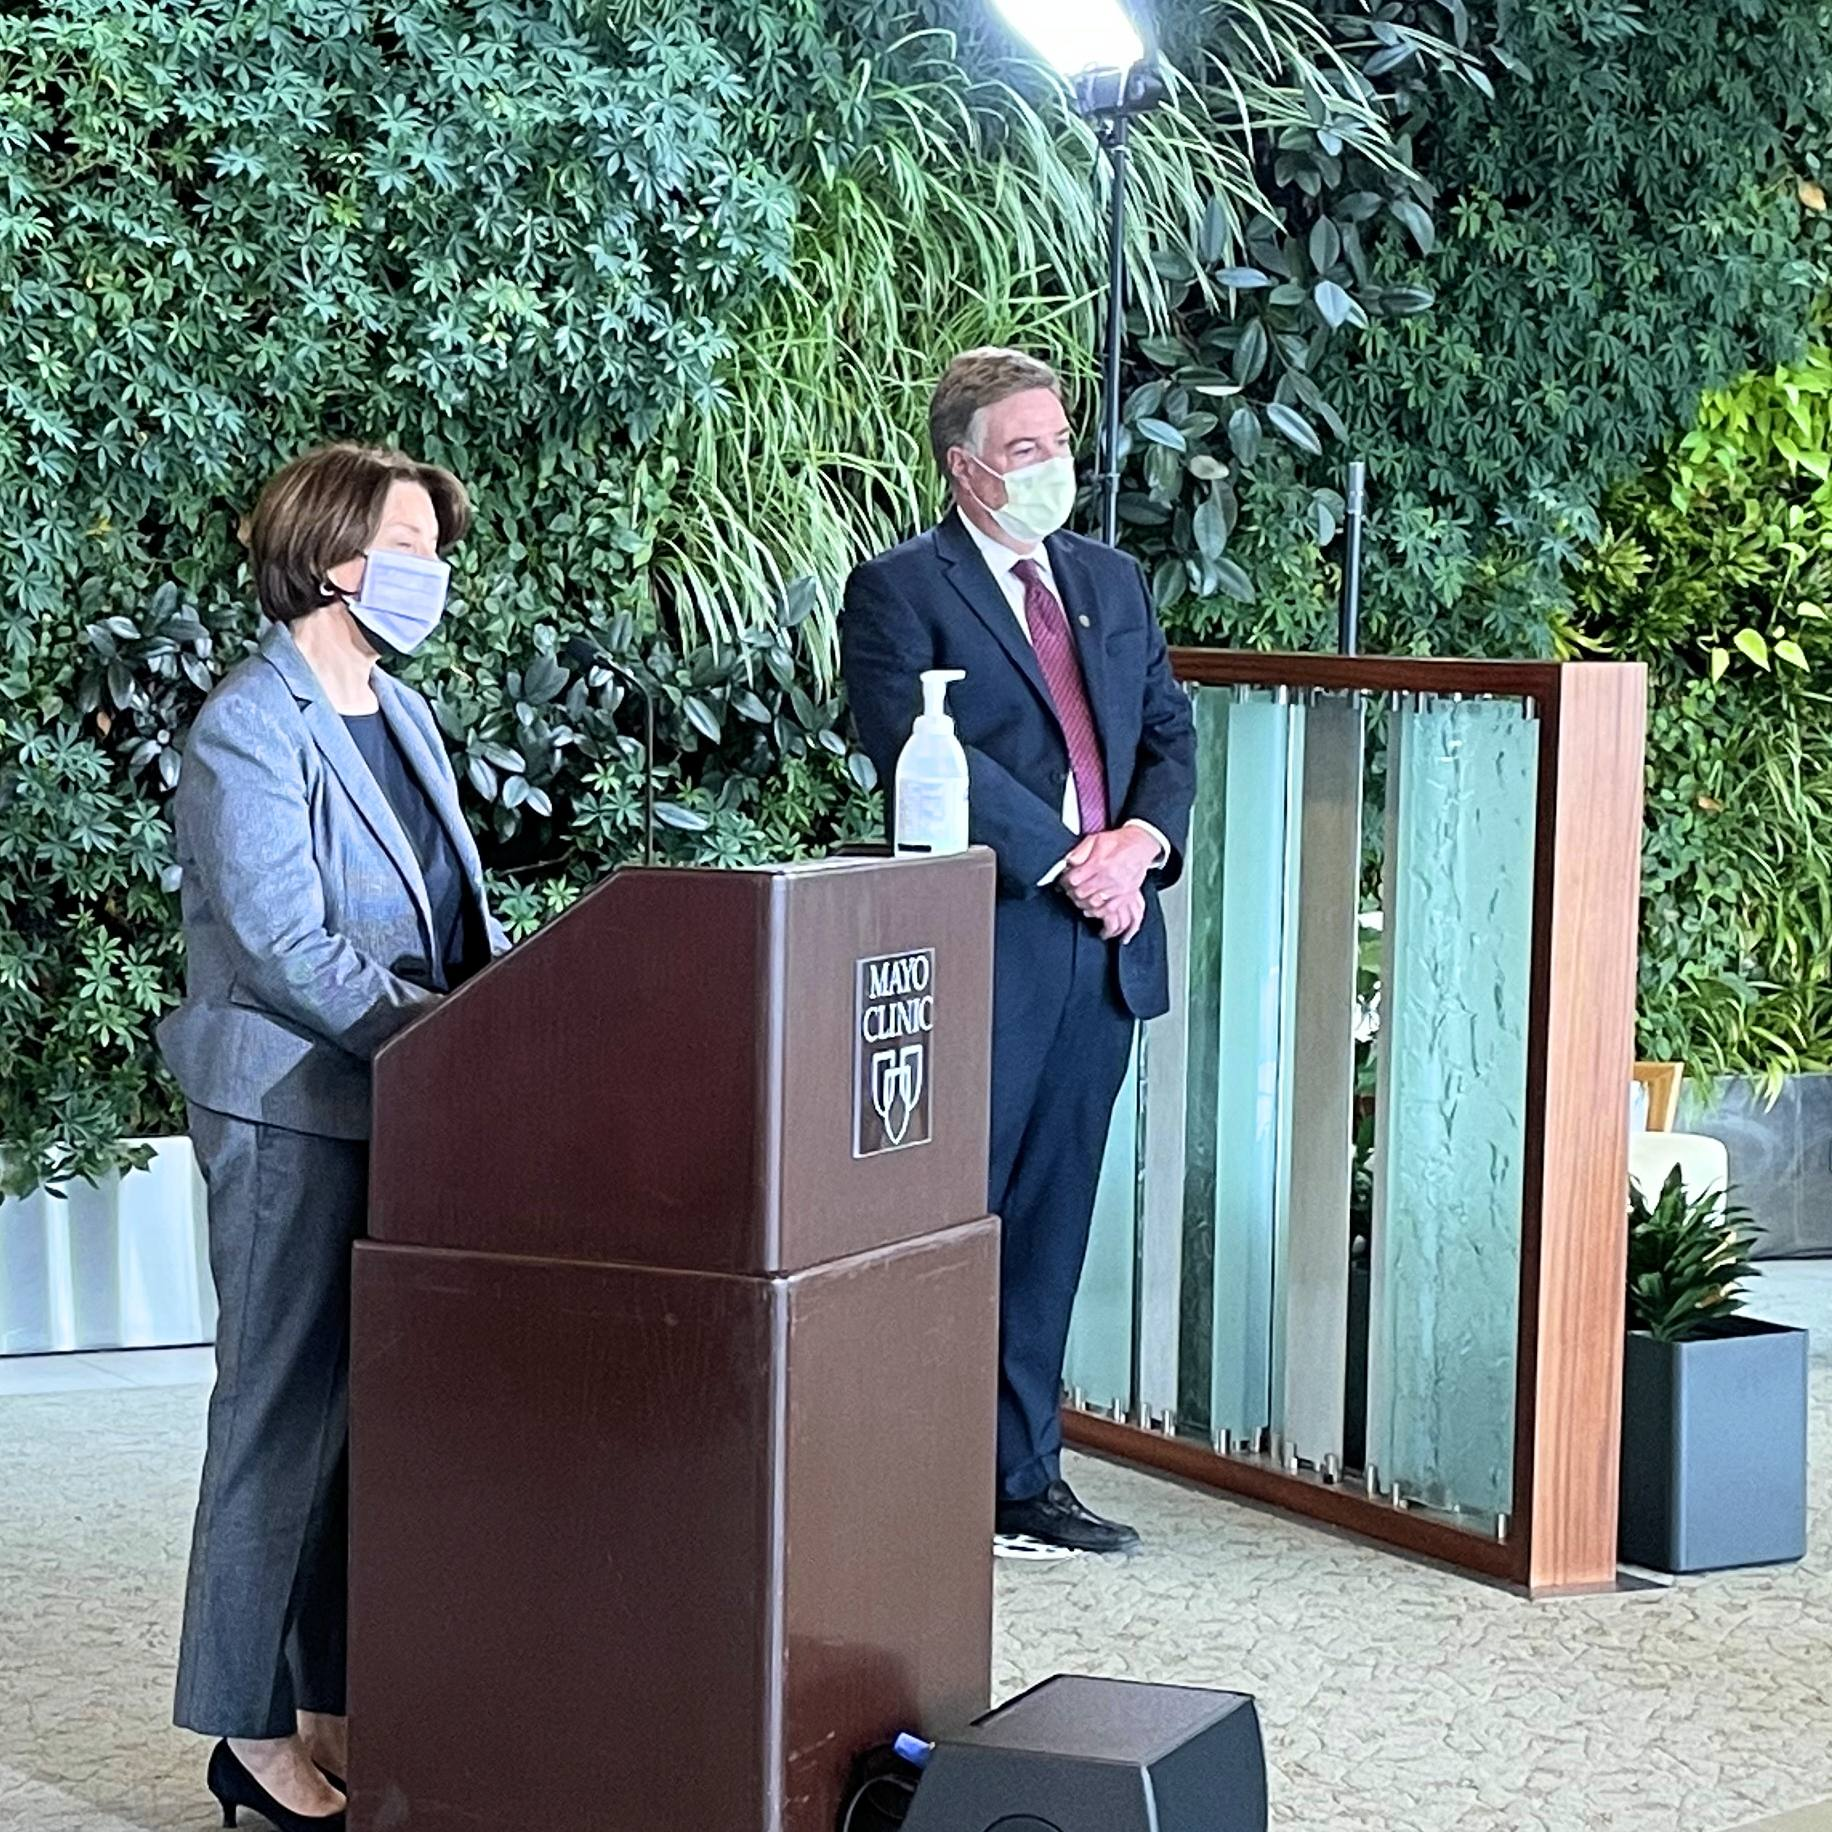 U.S. Senator Amy Klobuchar wearing a mask standing at a podium speaking at news conference with Dr. Andrew Badley, wearing a mask, standing at a distance